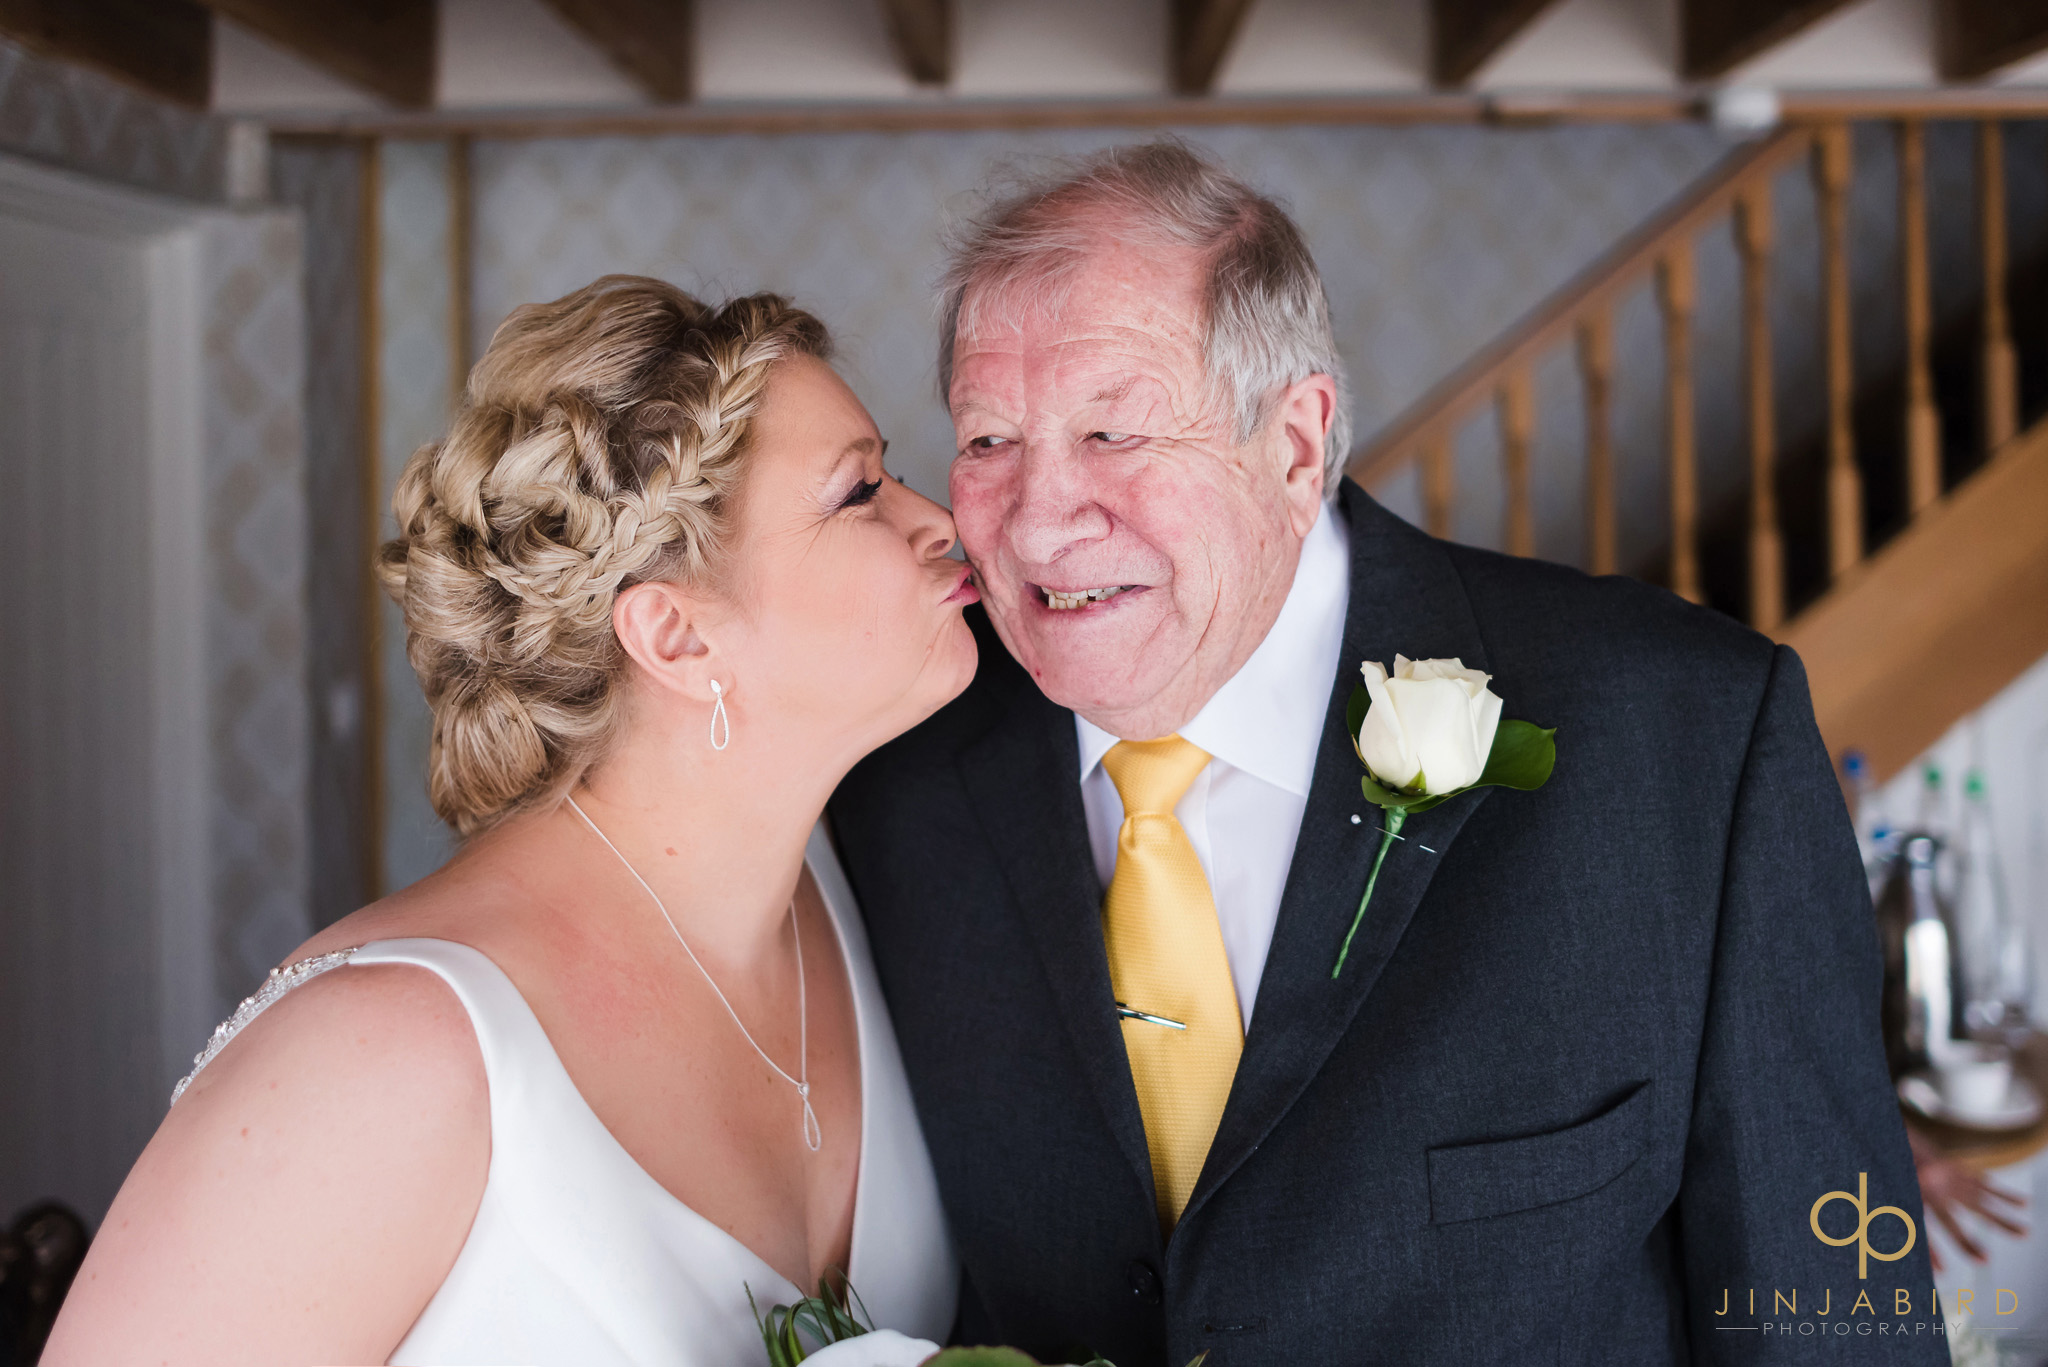 bride kissing dad on cheek